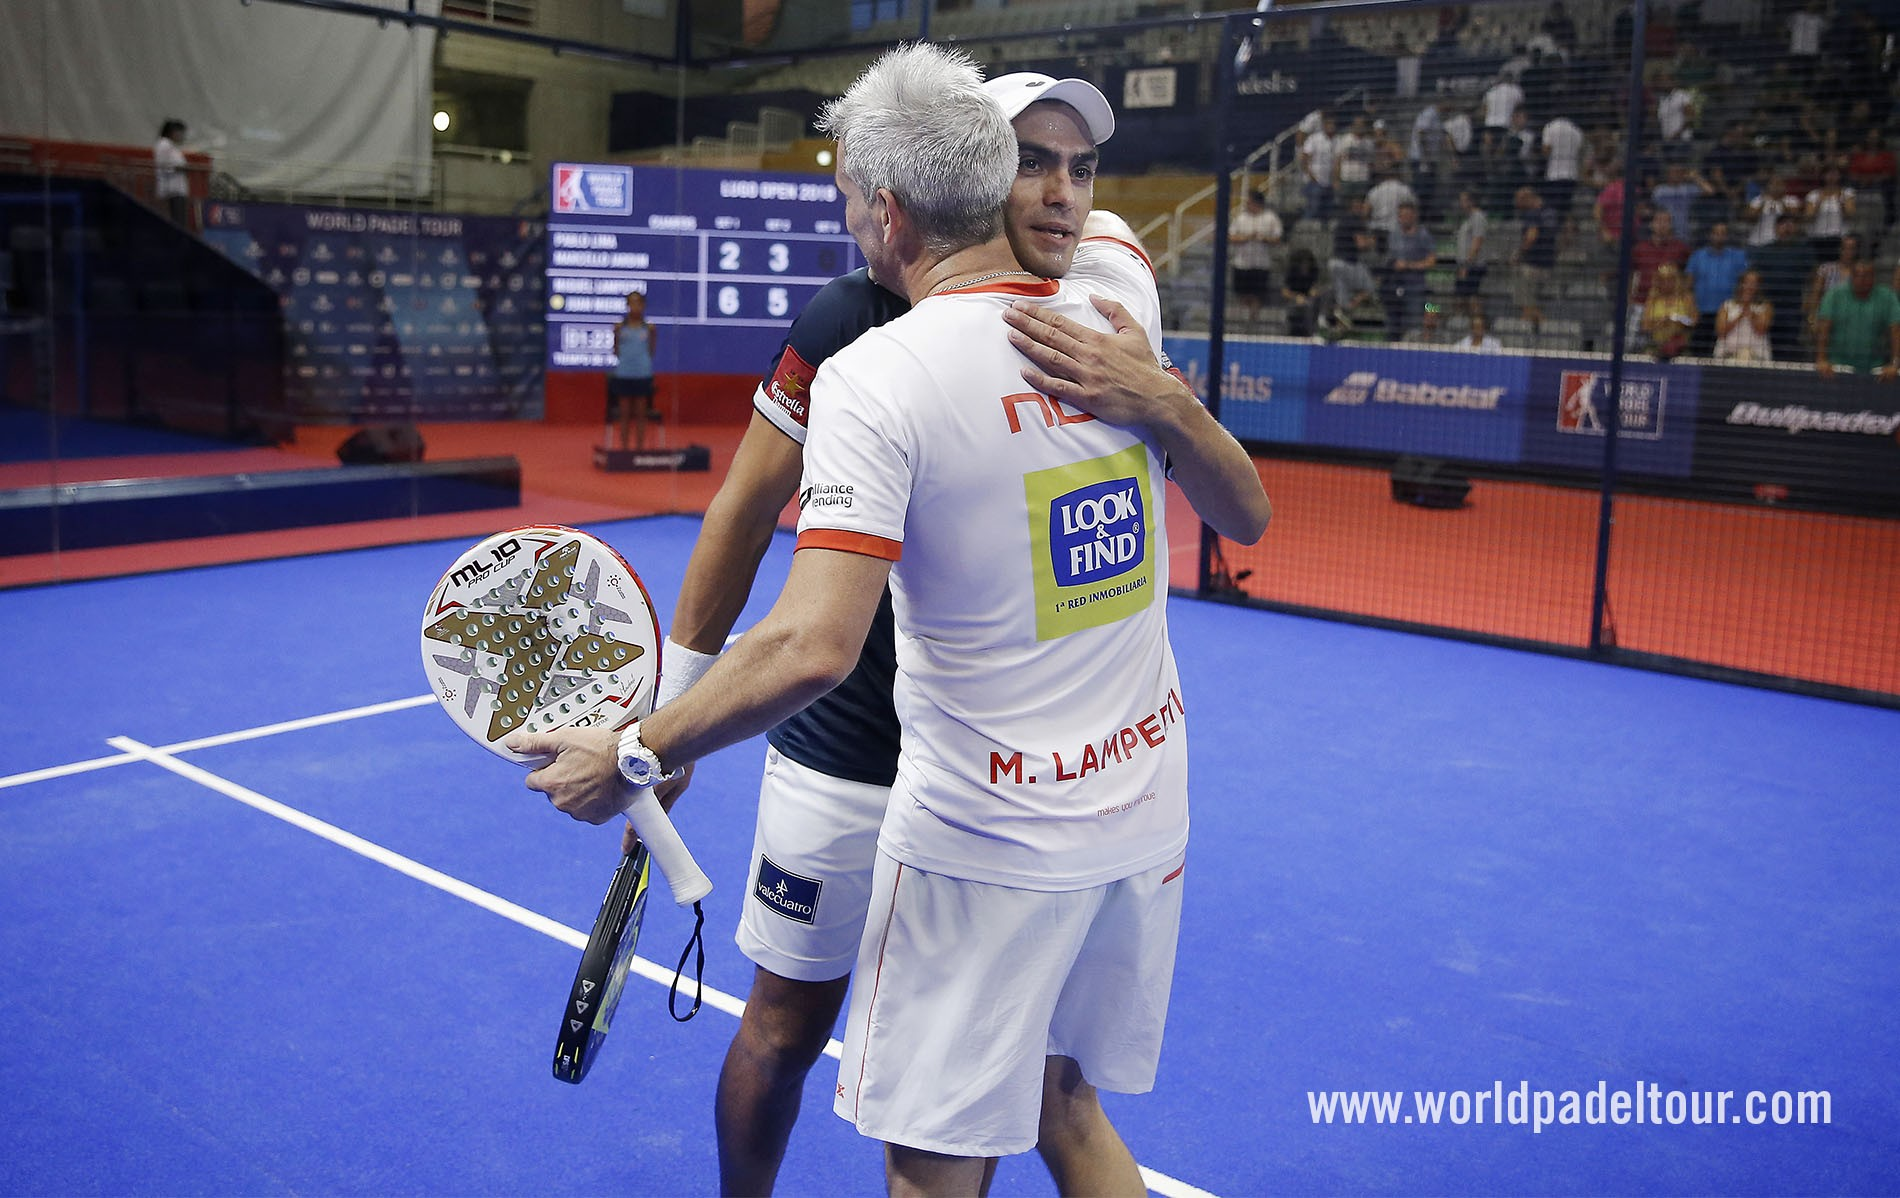 Third Semifinals Of The Year For Mieres And Lamperti World Padel Tour